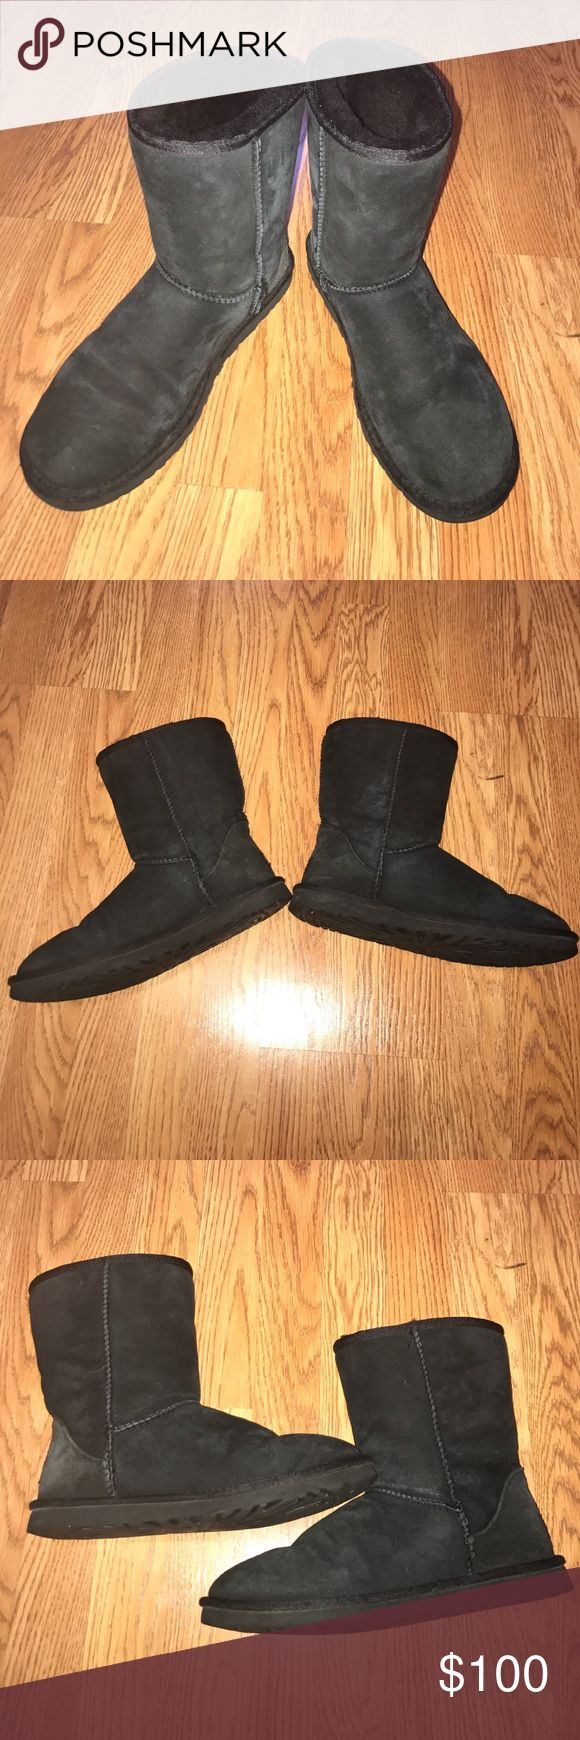 Classic Short Black Uggs Classic Style, Short (not the mini short, regular height sized) black uggs. Women's size 9! Fits 8.5-9 size foot perfectly. In great condition, worn about 15 times from December 16-February 17. No ripping or tearing on seams or soles of shoe. UGG Shoes Winter & Rain Boots